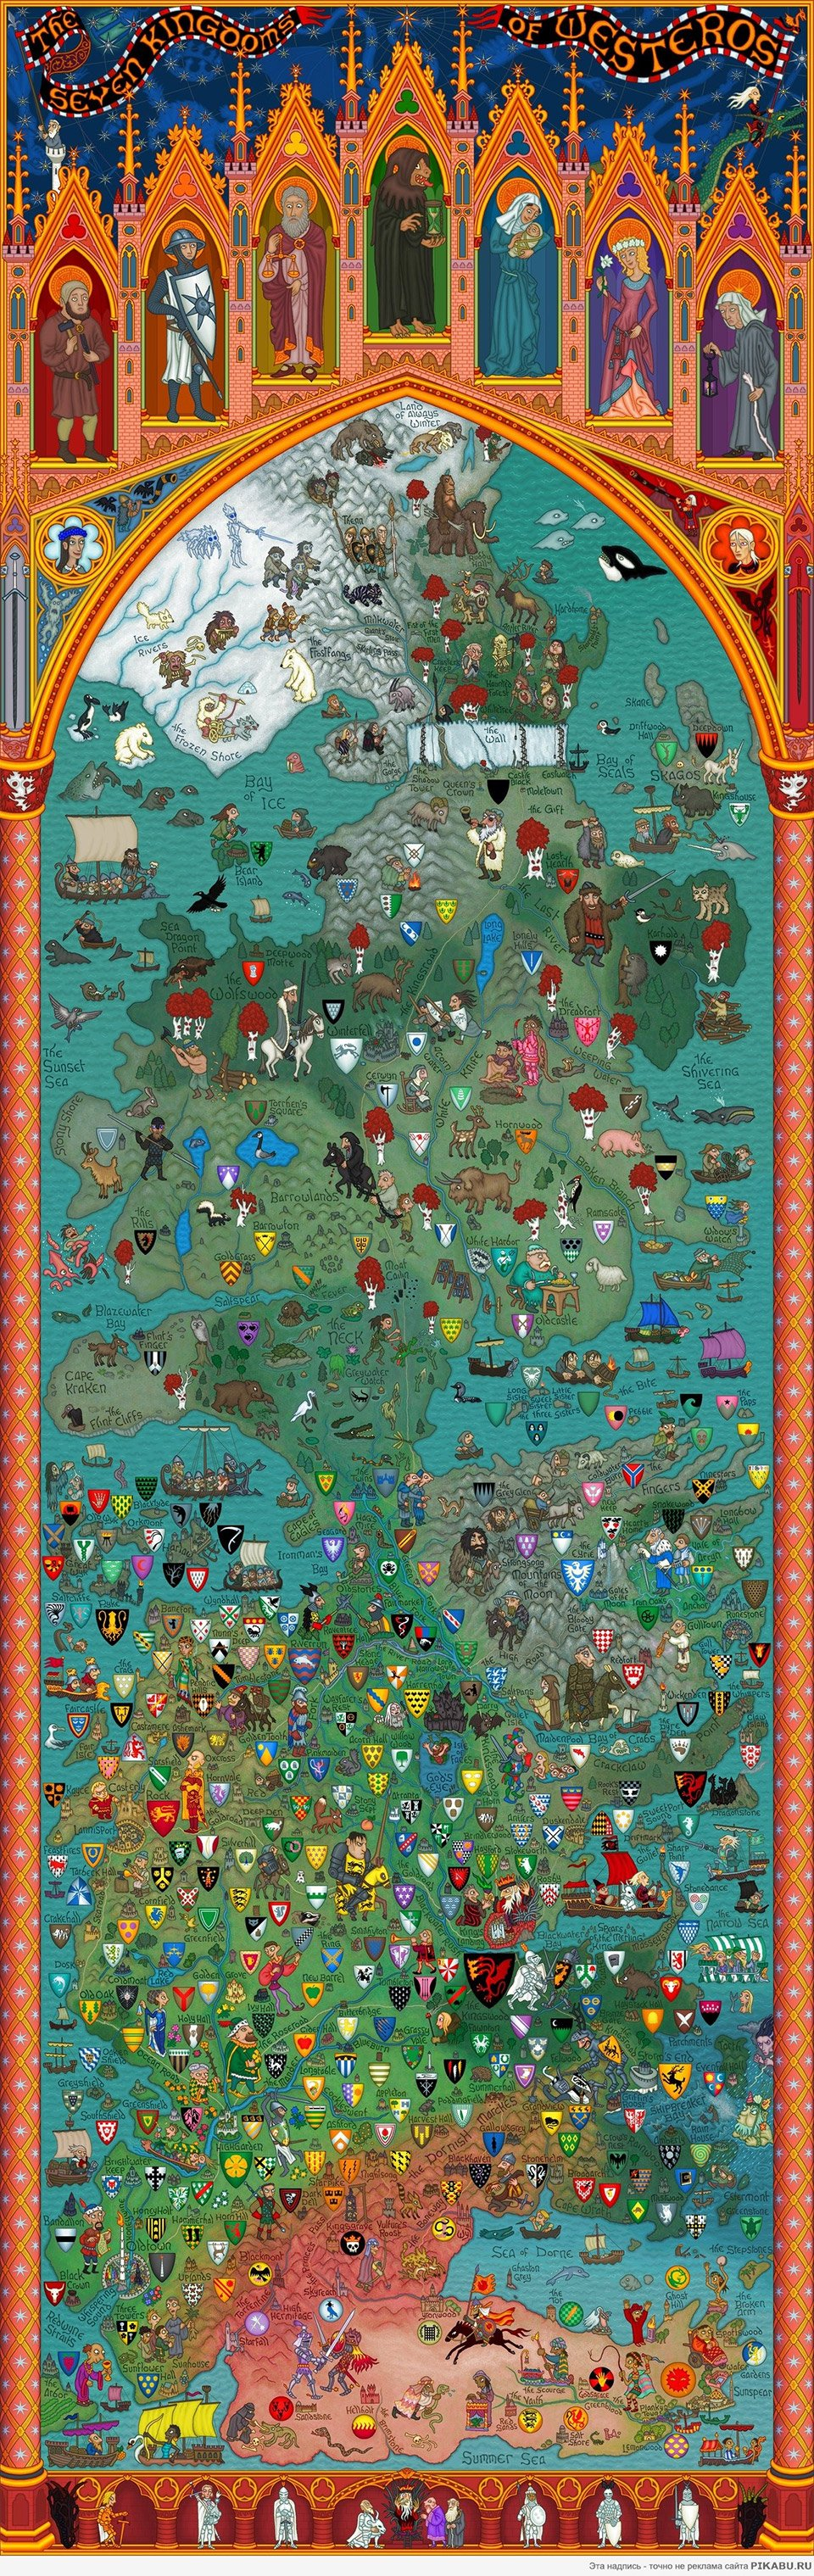 Beautifully Detailed Game Of Thrones Westeros Map Mightymega